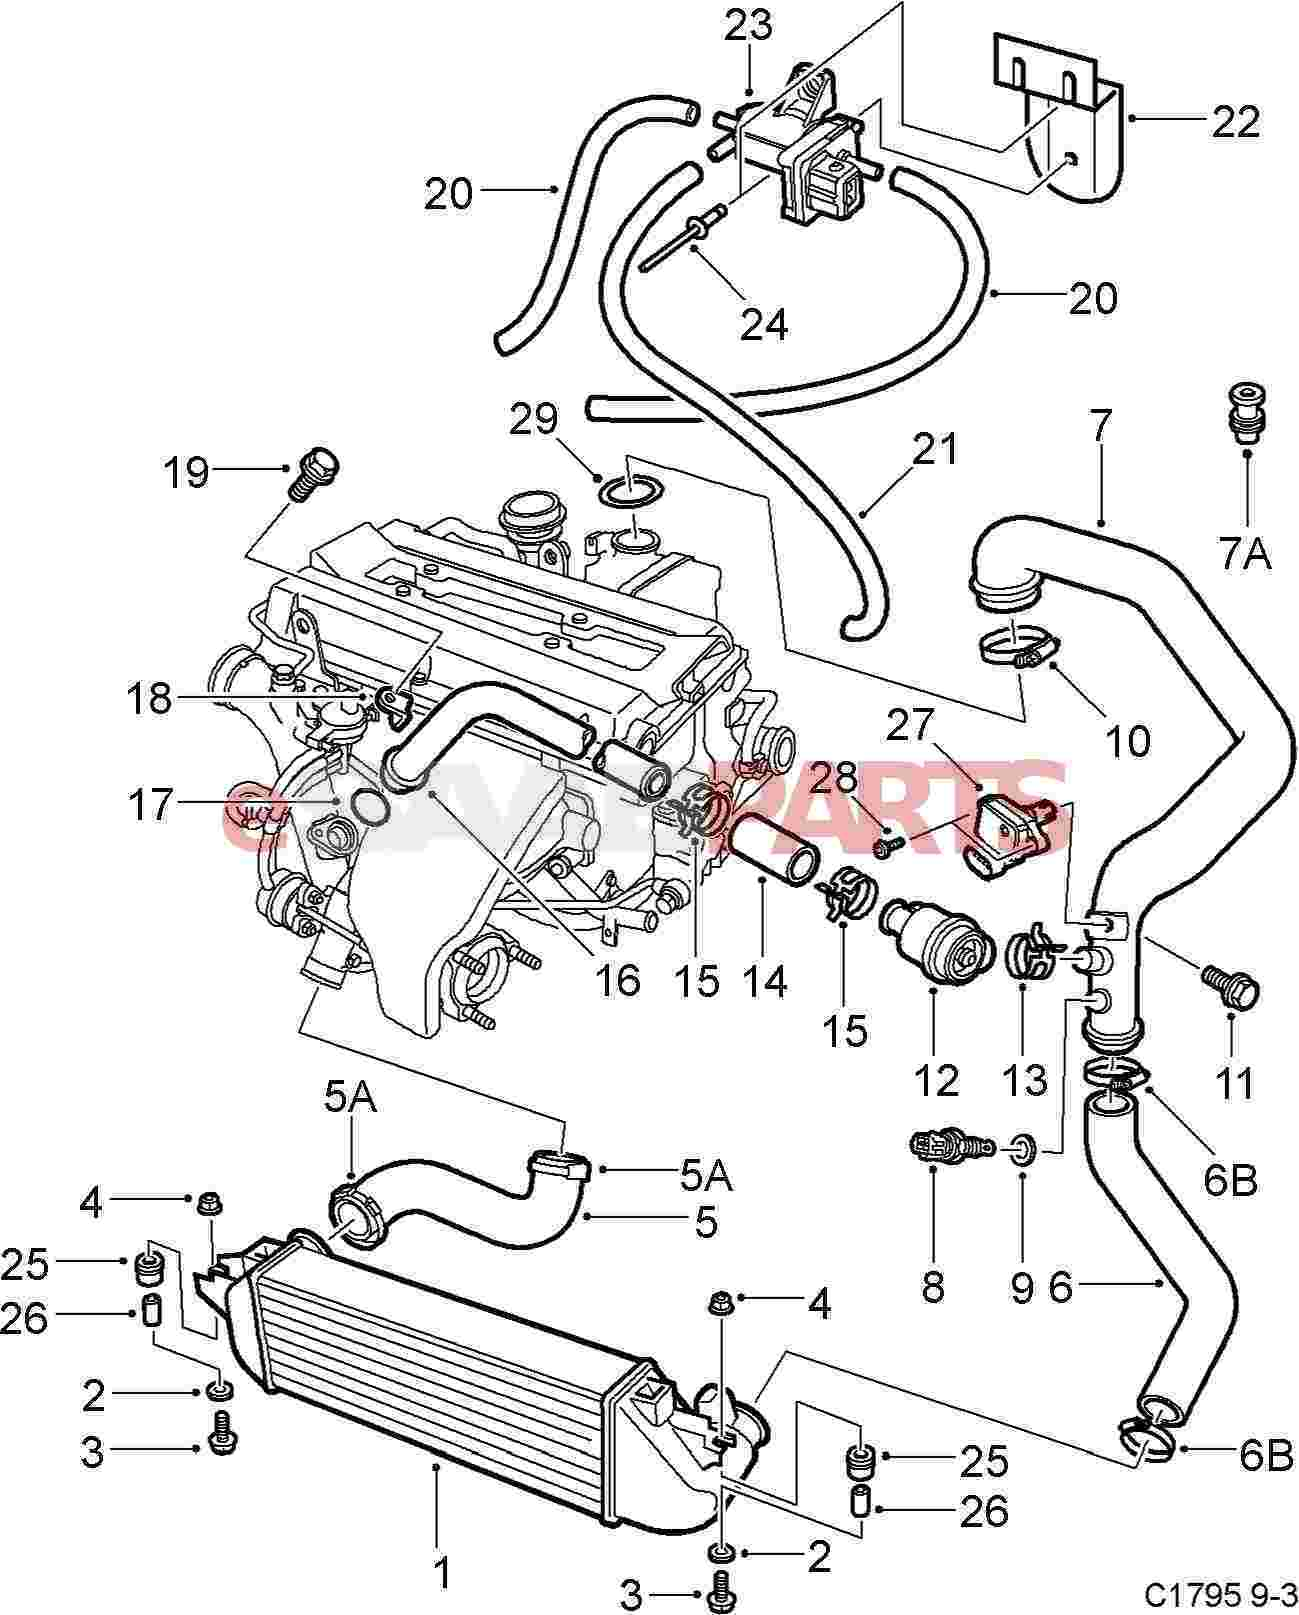 Gear Box Parts Diagram, Gear, Free Engine Image For User